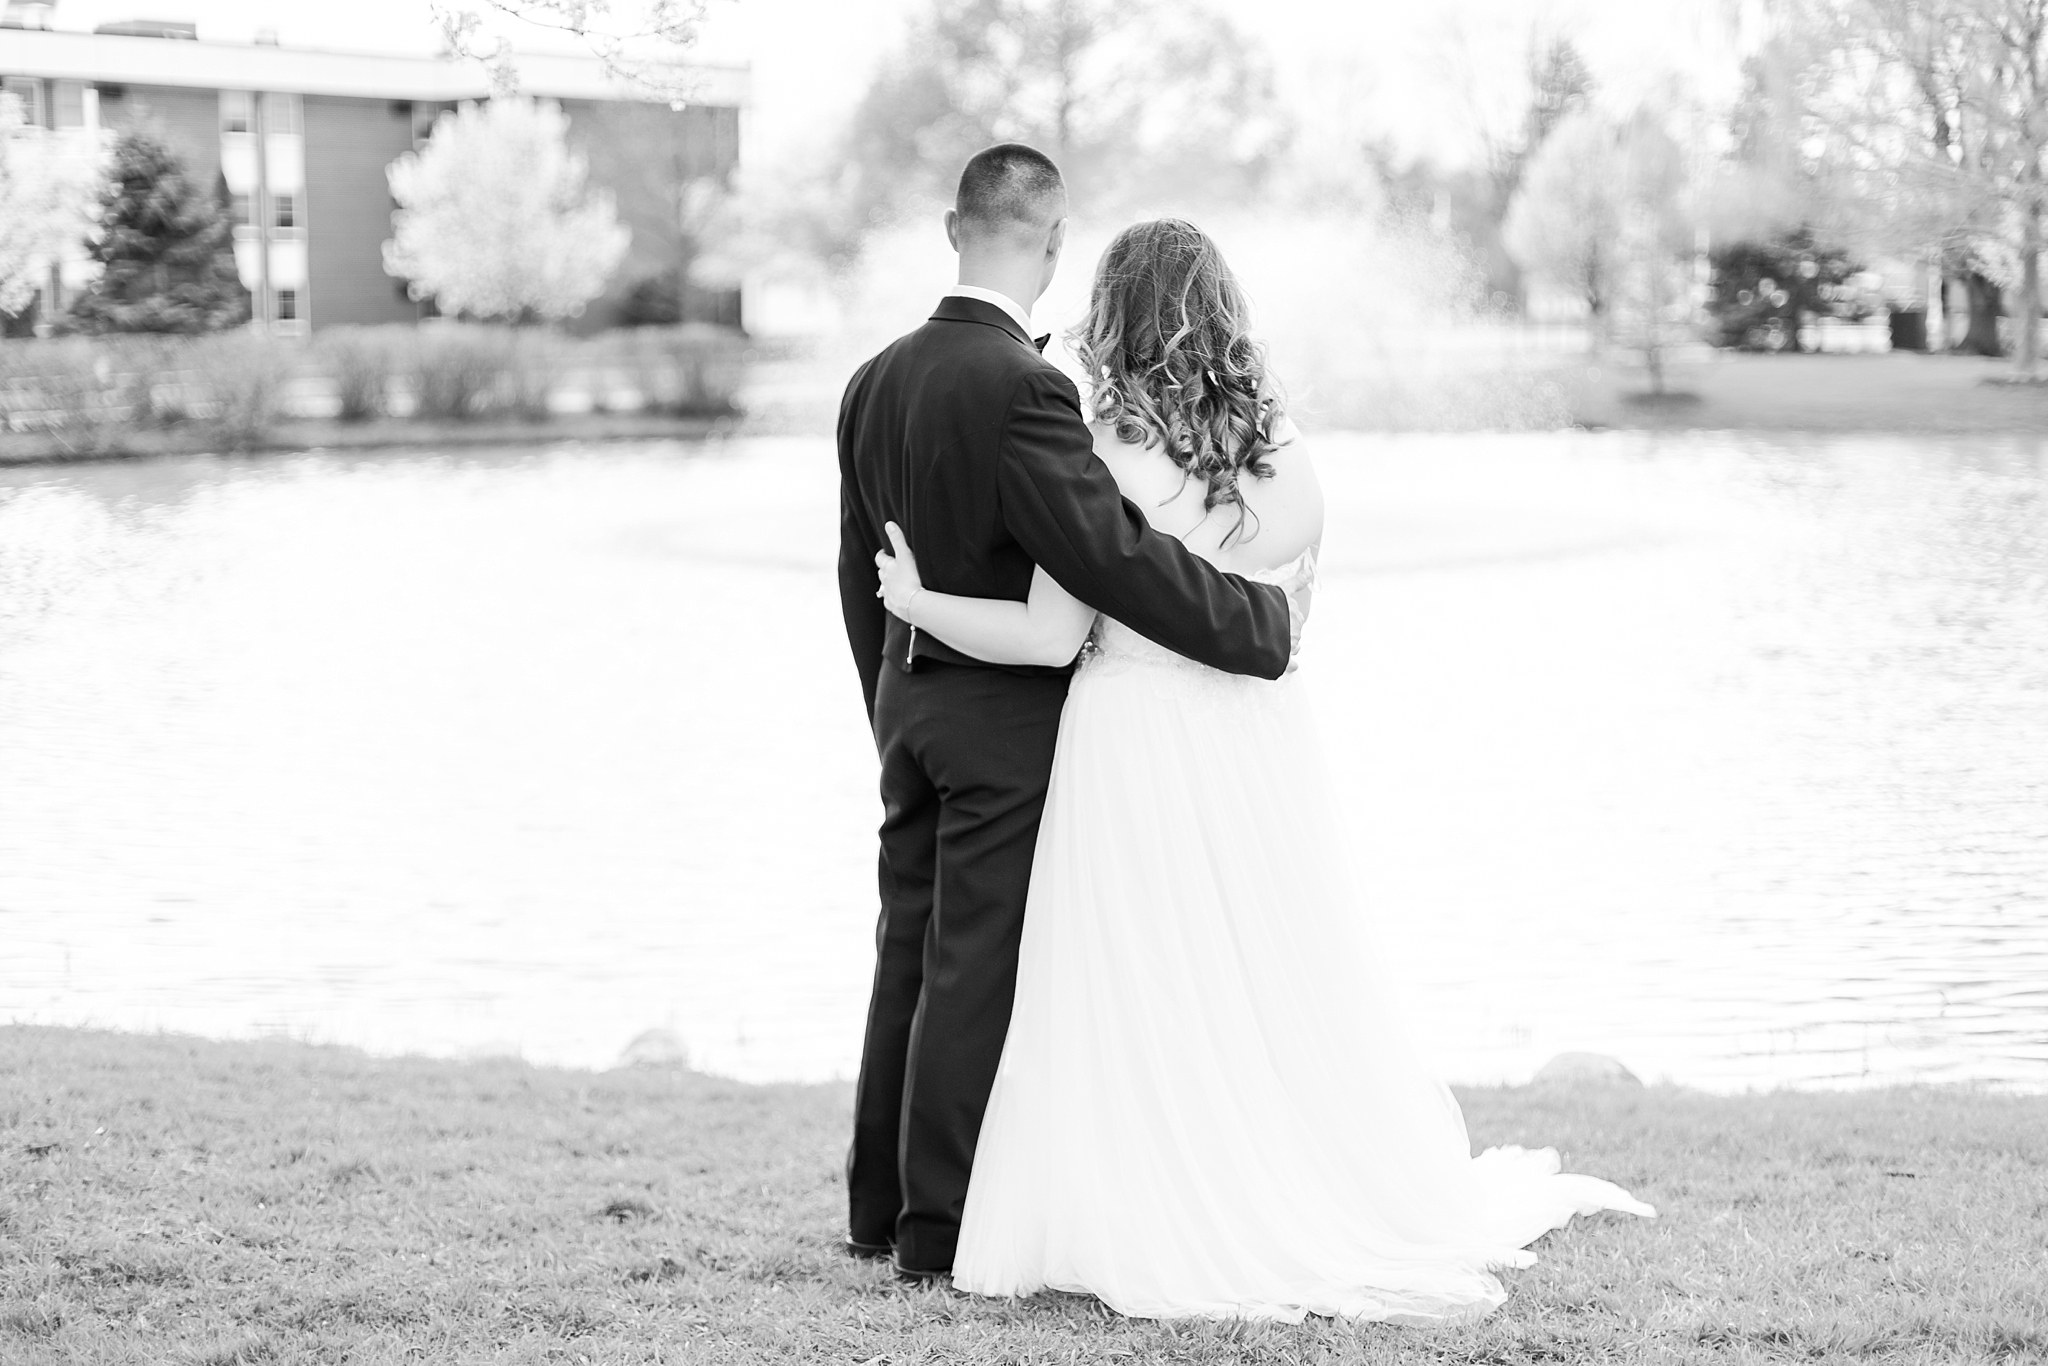 romantic-artful-candid-wedding-photos-in-st-clair-shores-at-the-white-house-wedding-chapel-by-courtney-carolyn-photography_0066.jpg